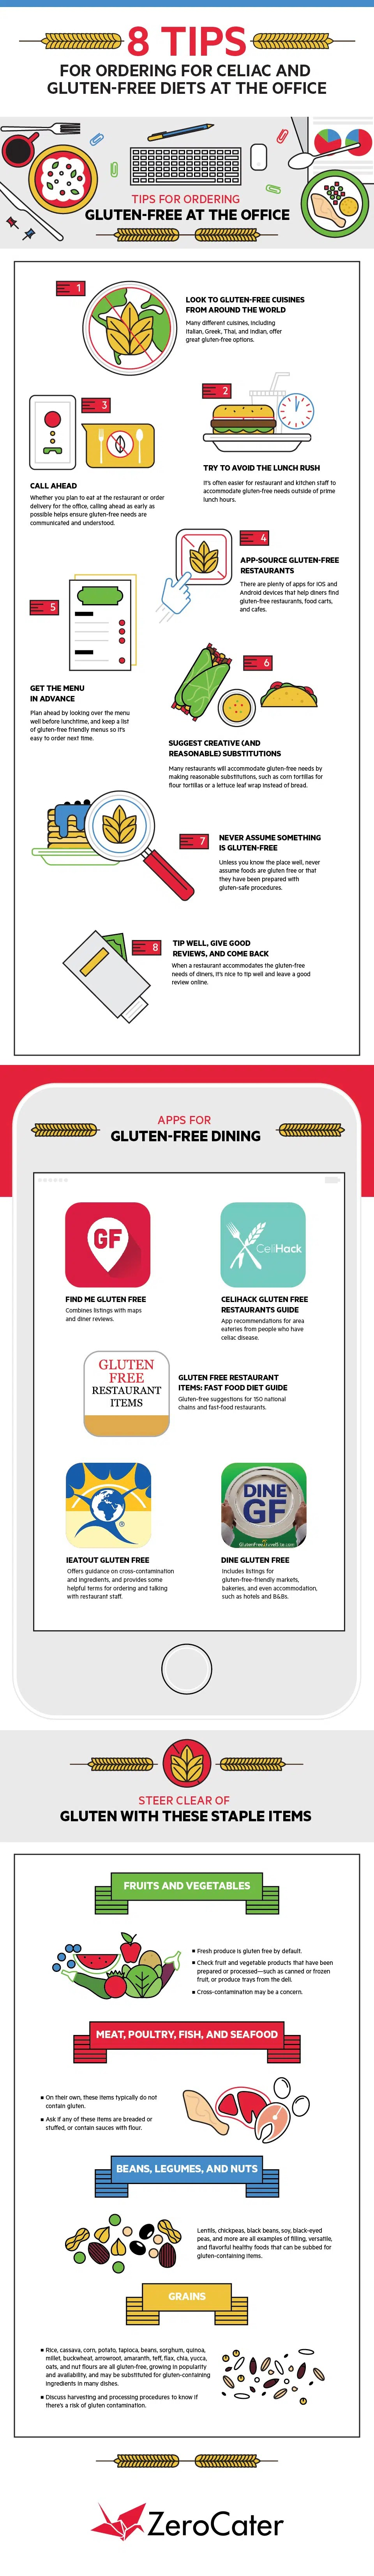 8 Tips for Ordering Gluten-Free at the Office